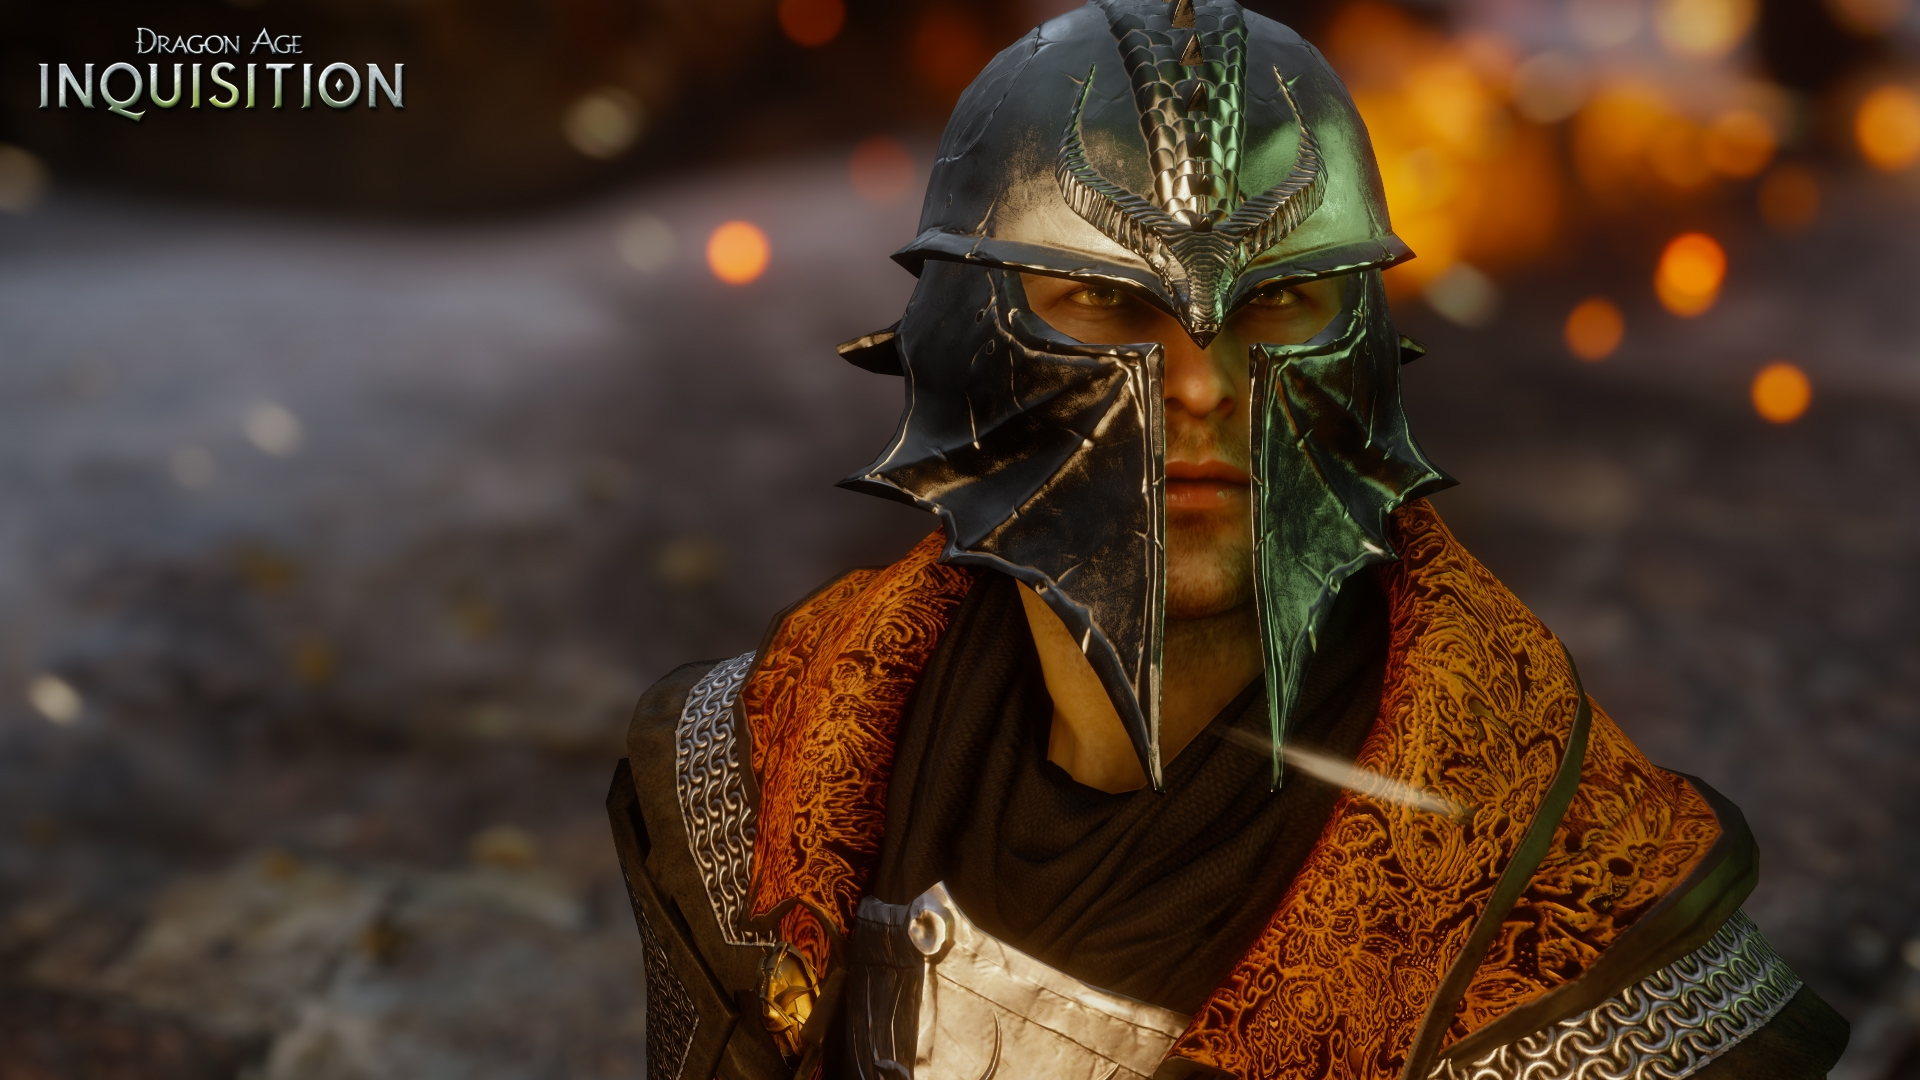 Dragon Age: Inquisition - because gamers have infinite time and money at their disposal